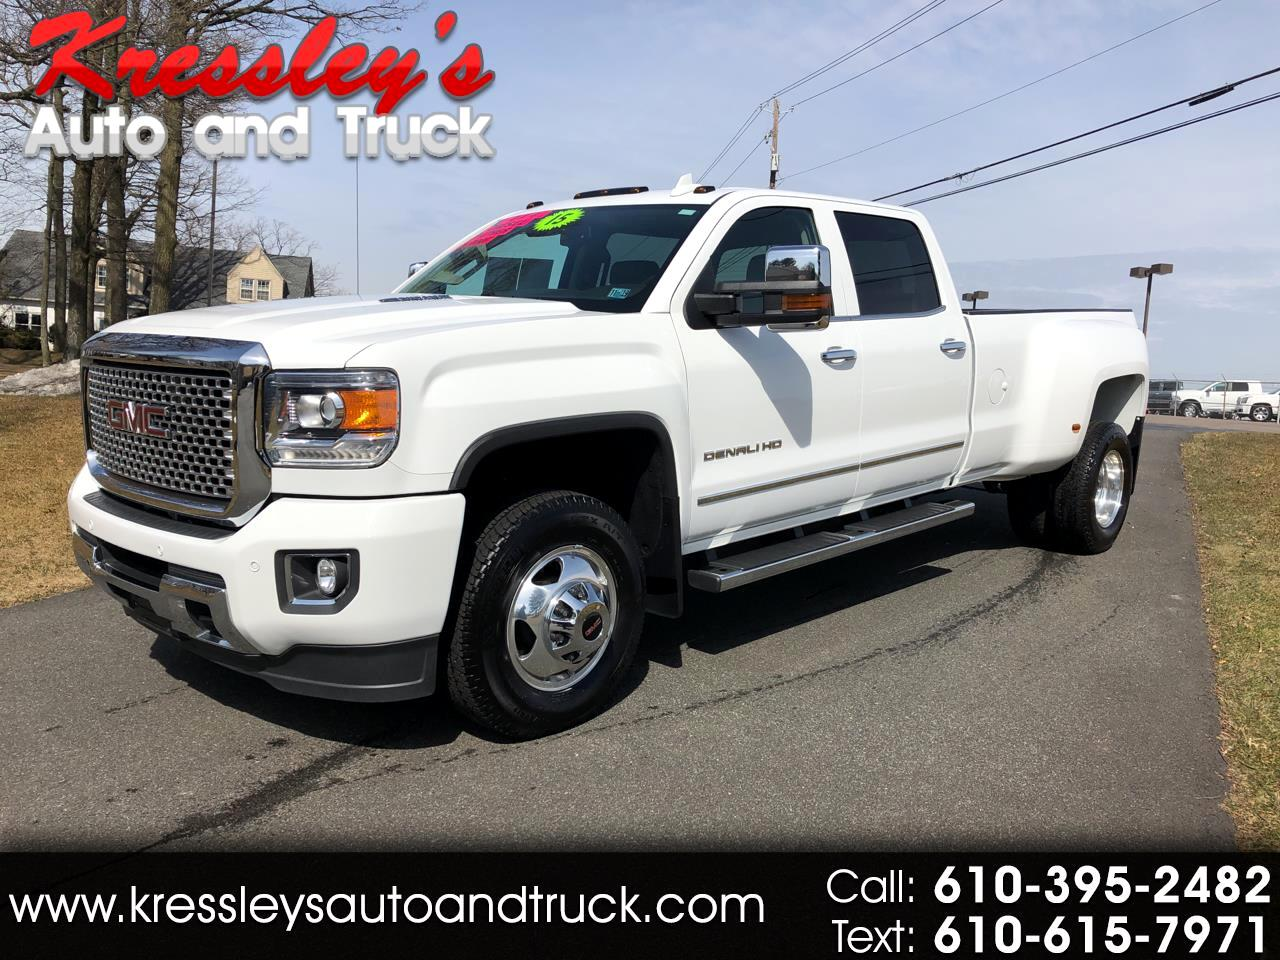 2015 GMC Sierra 3500HD available WiFi 4WD Crew Cab 167.7